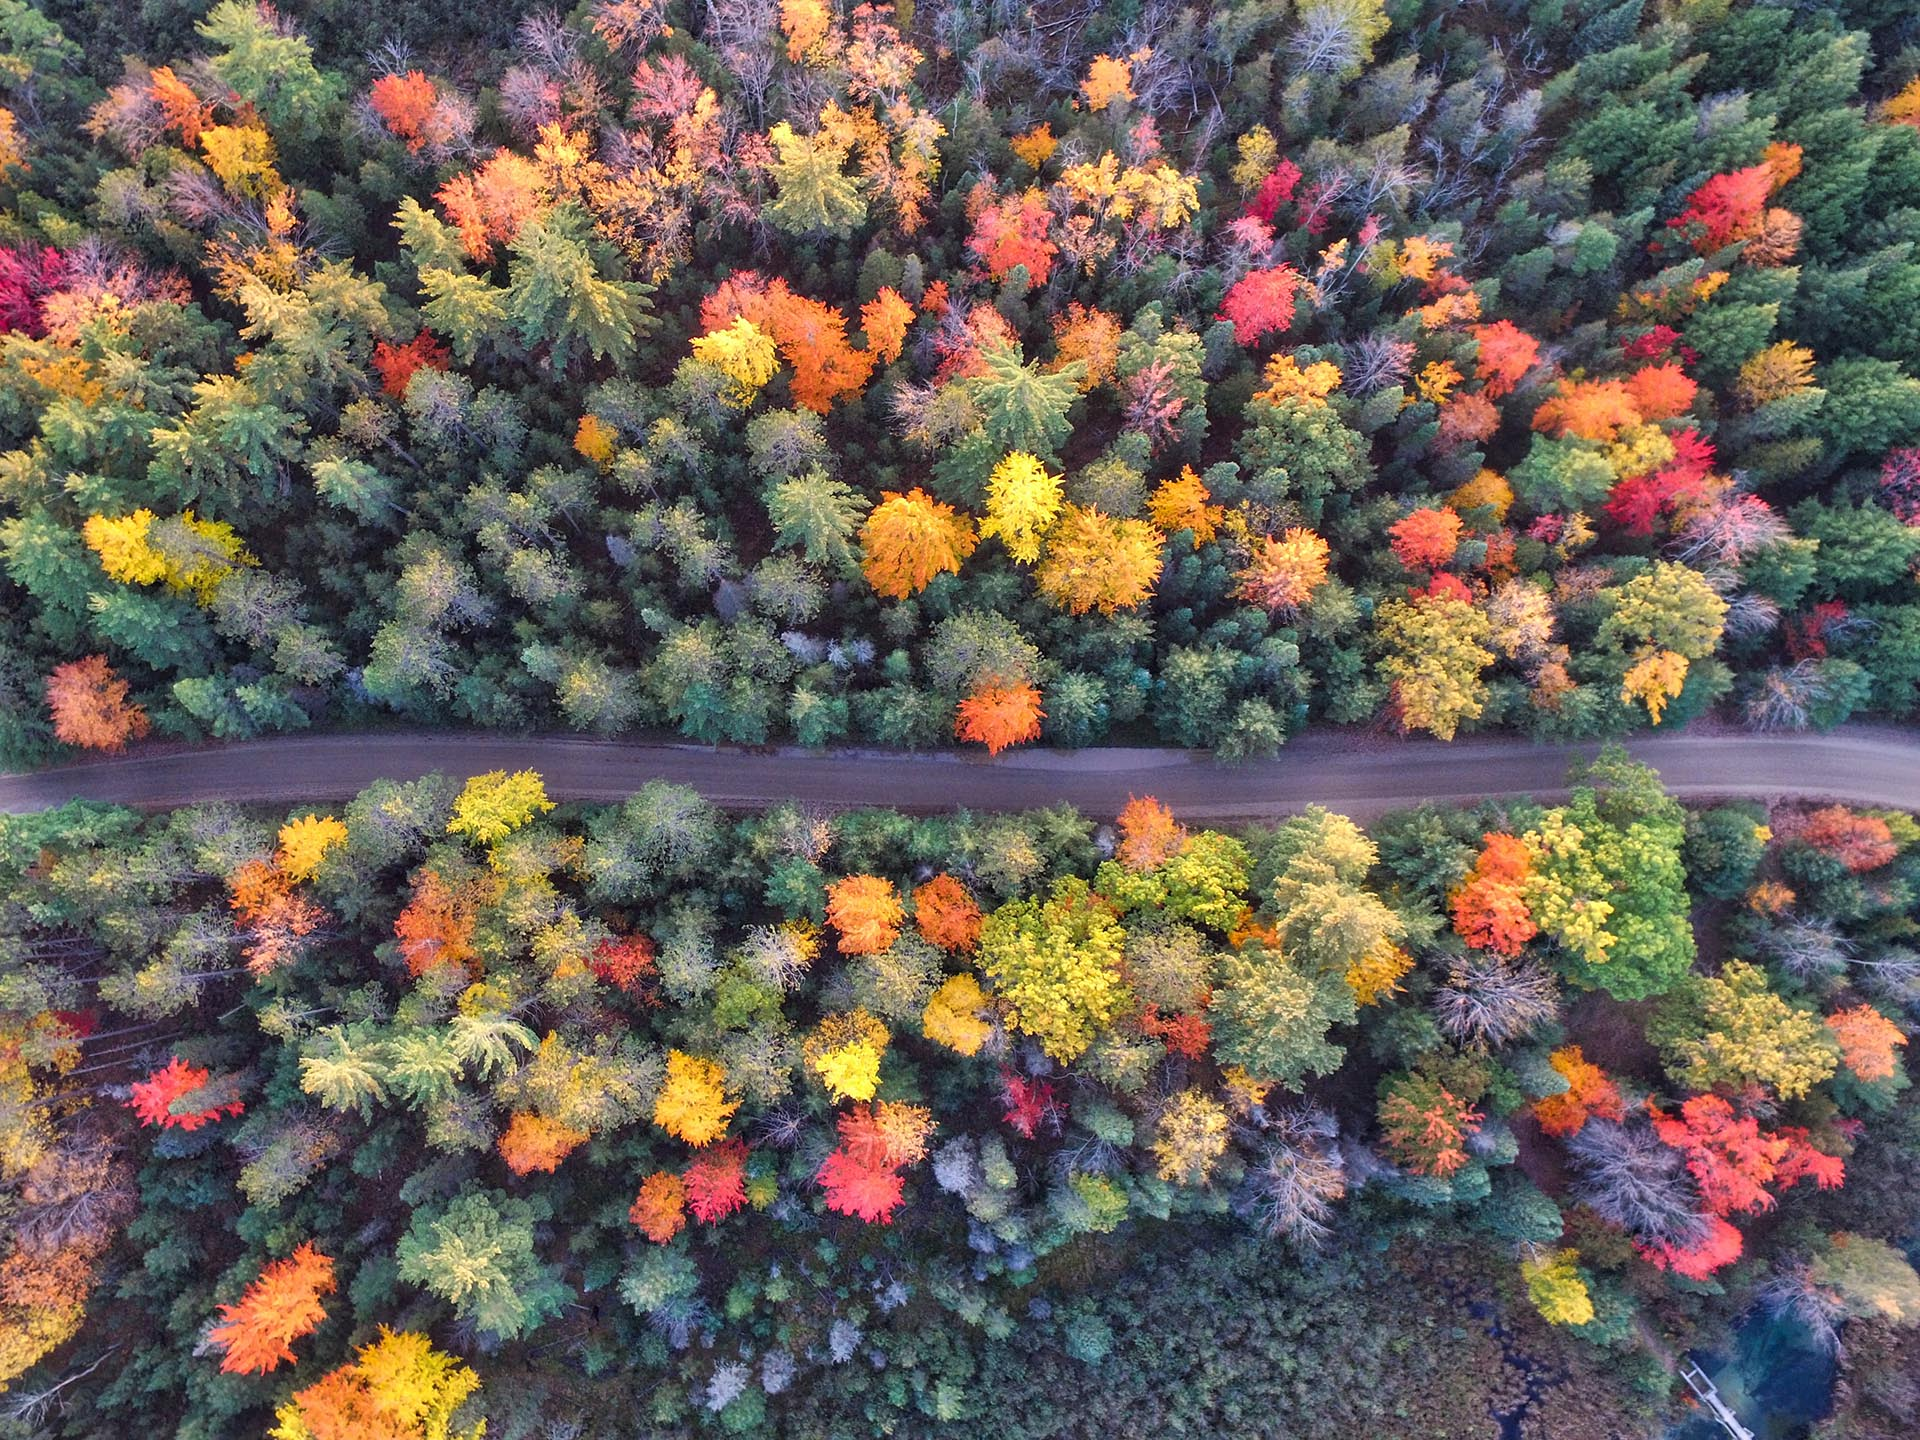 Ariel shot of trees and a road during autumn